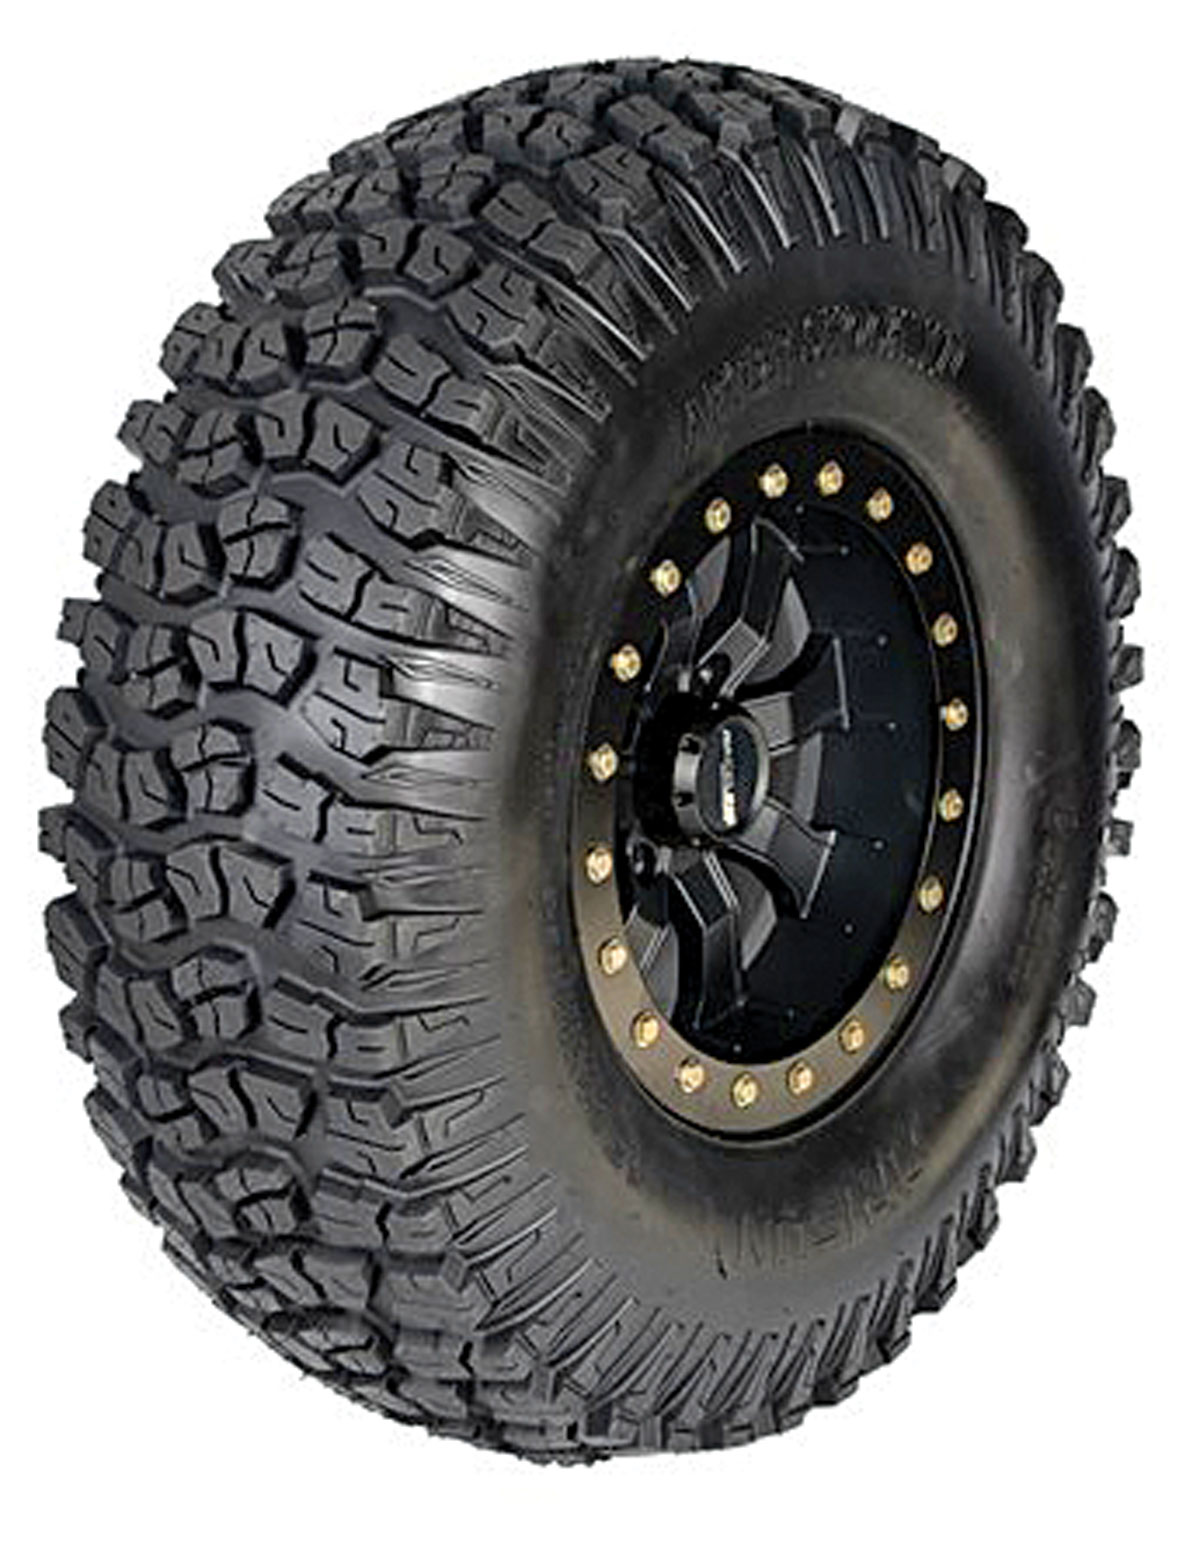 Utv Tires For Sale >> Hardpack Dot Utv Tire Buyer S Guide Utv Action Magazine